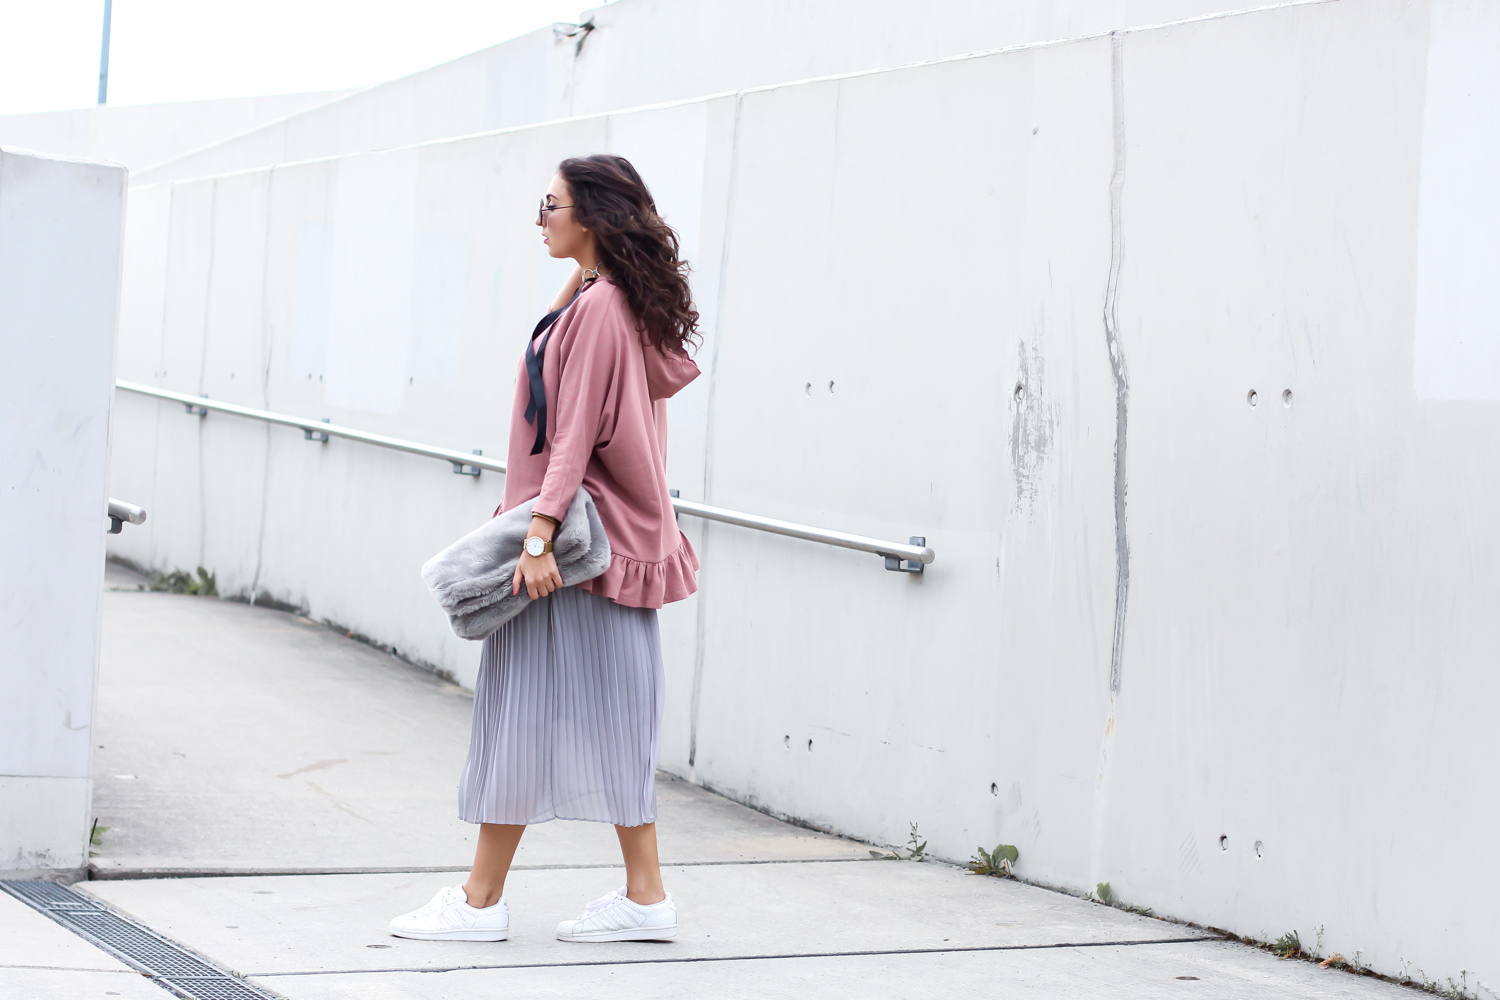 ruffled hoodie reserved oversize streetstyle pilssee midi skirt pleated maxiskirt faltenrock pullover kombinieren sneakers outfit casual sporty summer look berlinstyle fashion blogger germany berlin samieze